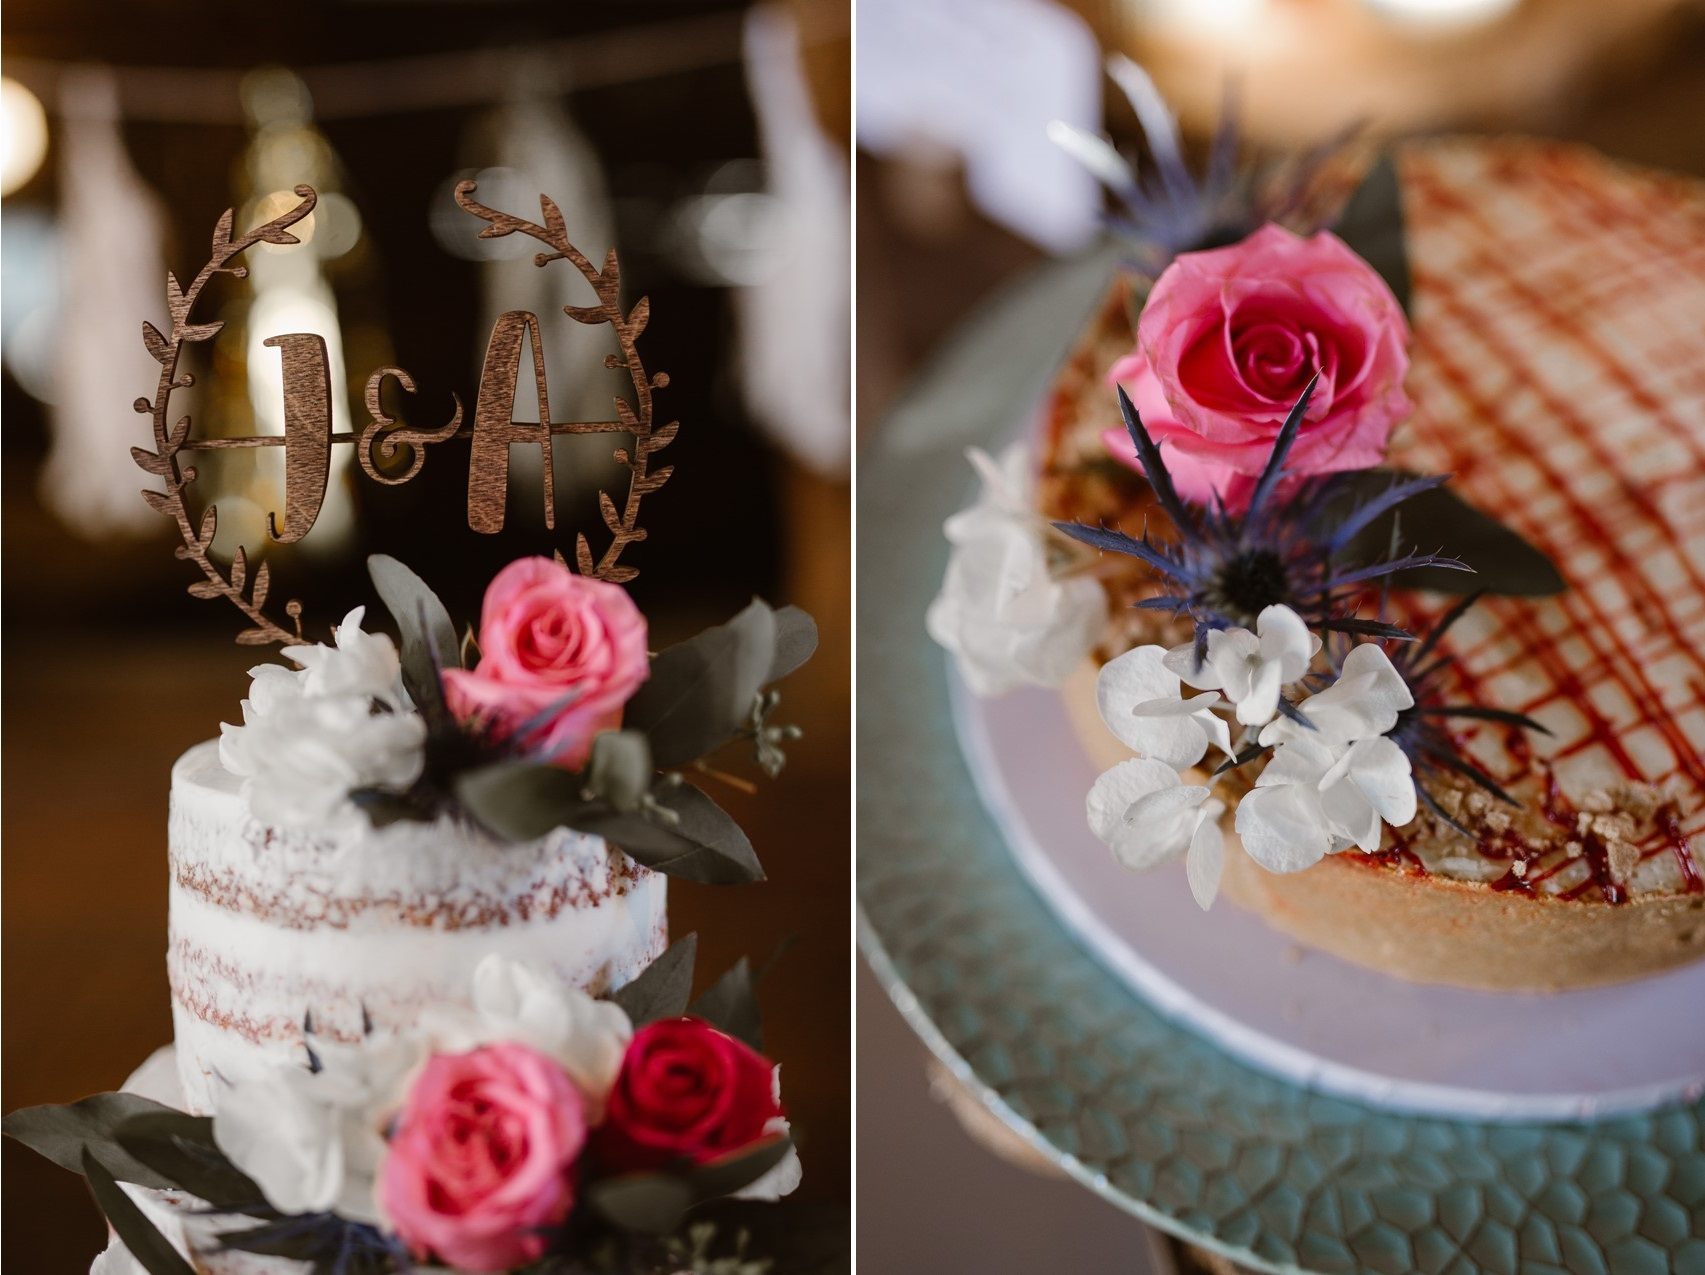 41-Rustic-Vintage-Wedding-Pies